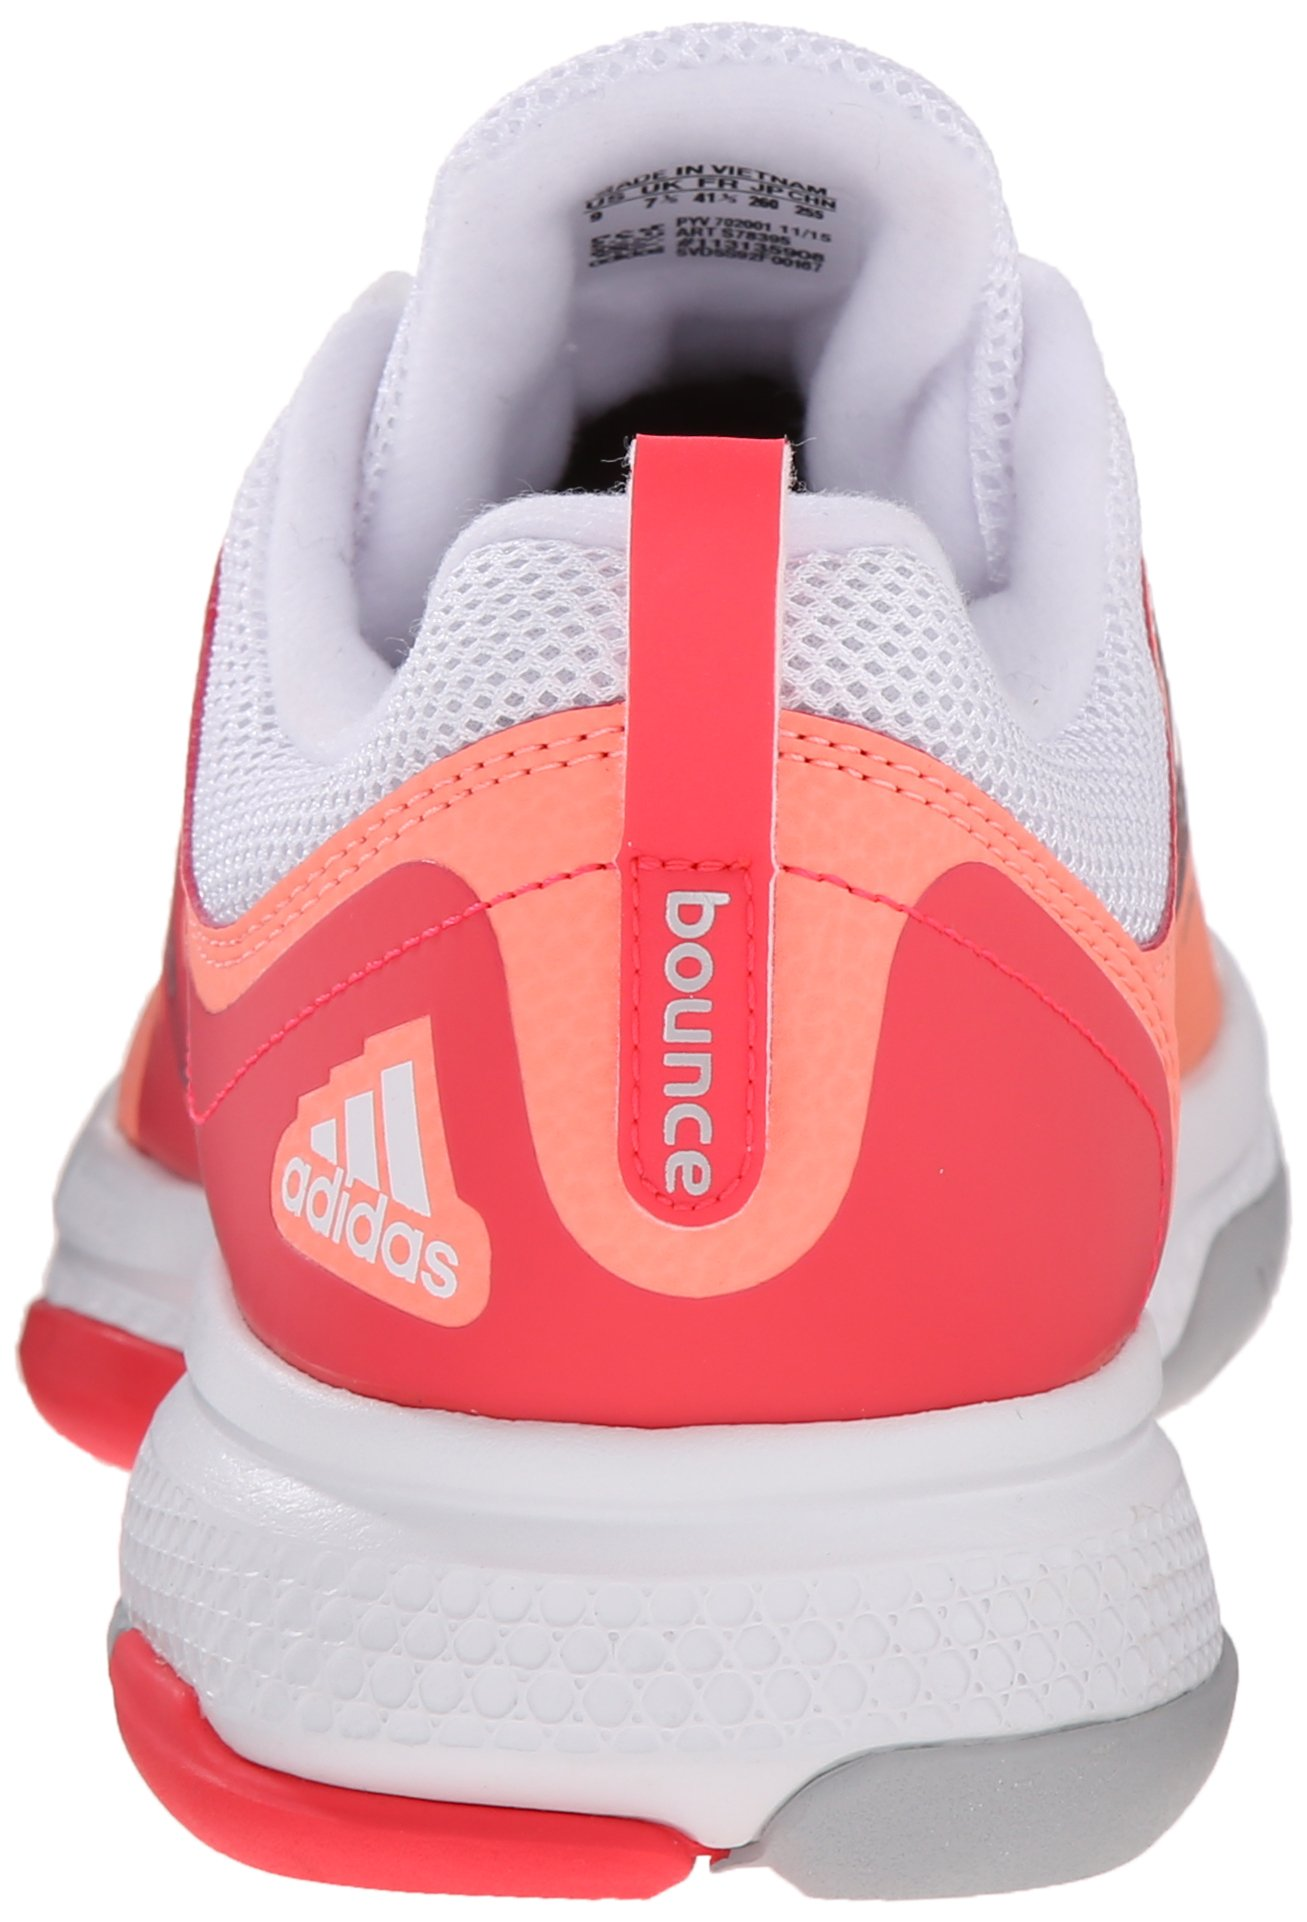 adidas Performance Women's Barricade Classic Bounce W Training Footwear,Sun Glow Yellow/Metallic Silver/Shock Red,9.5 M US by adidas (Image #2)